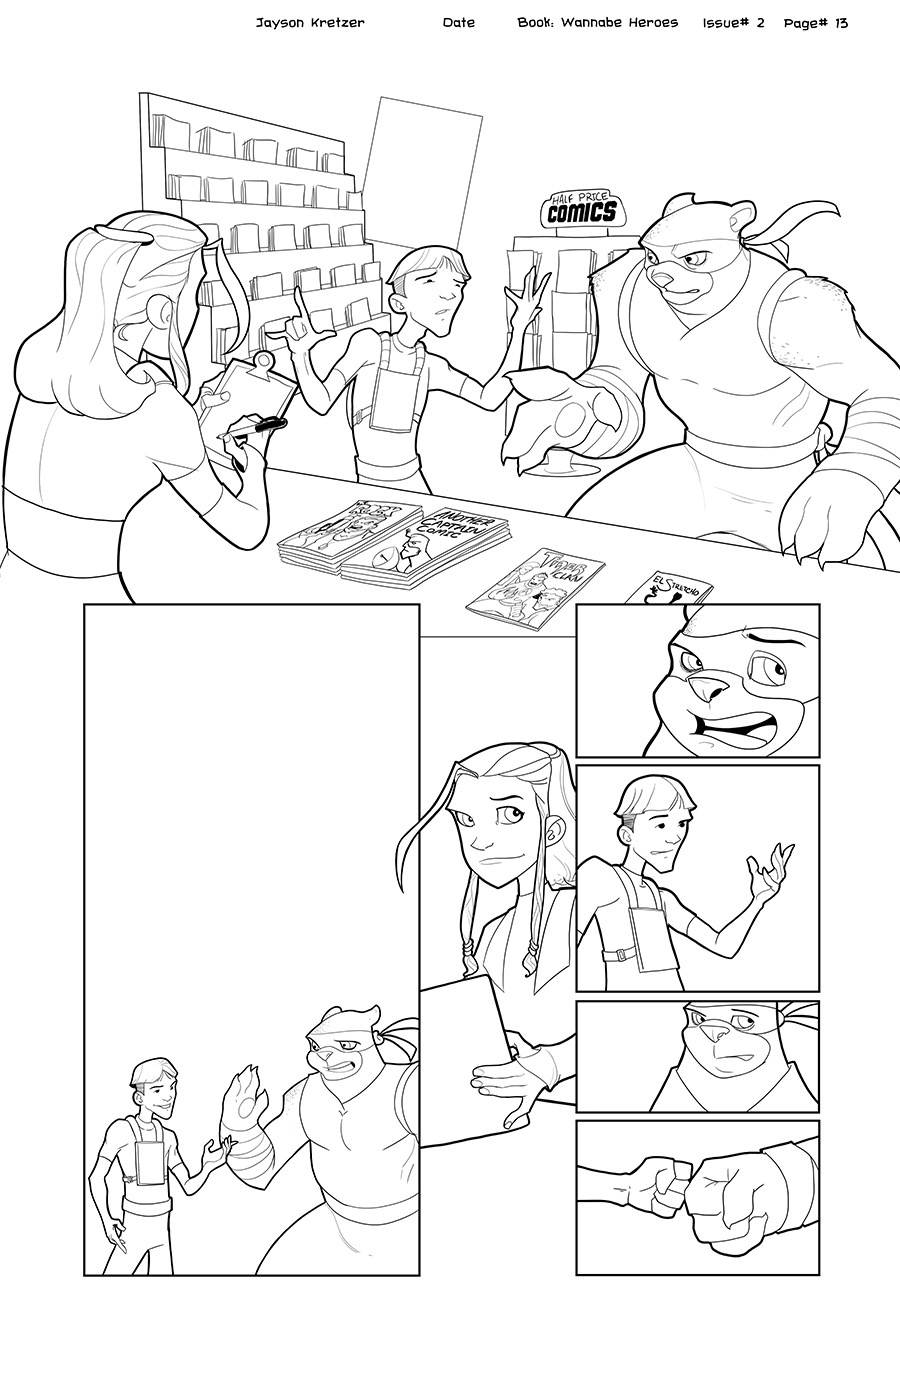 WBH Issue 2 Page 13